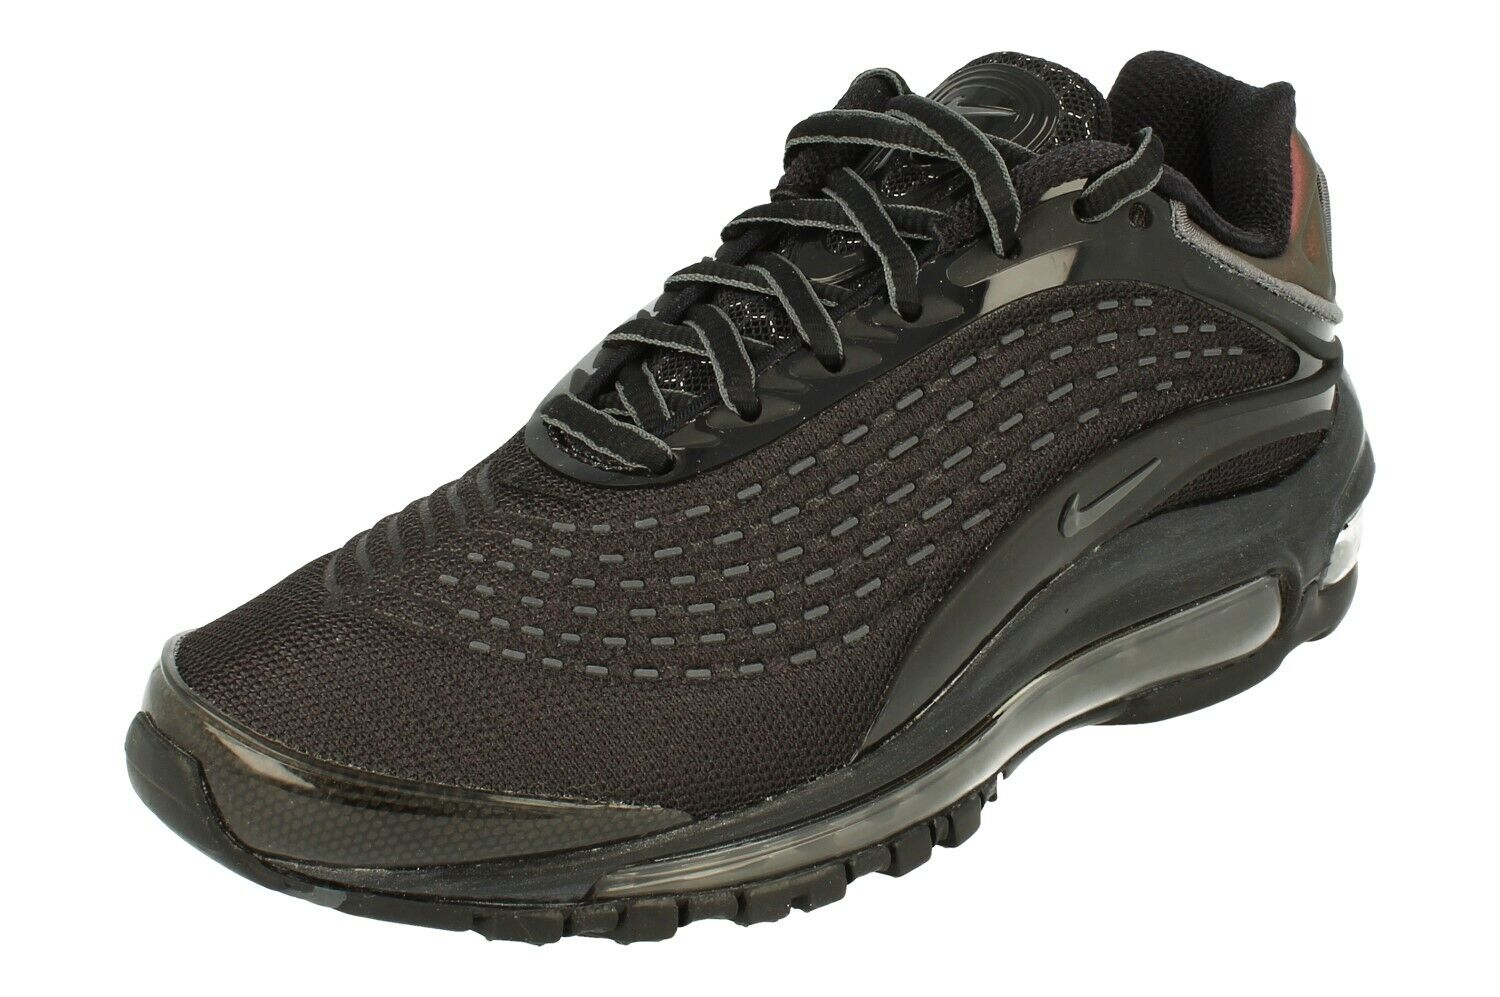 Nike Air Max Deluxe Mens Running Trainers Av2589 Sneakers shoes 001